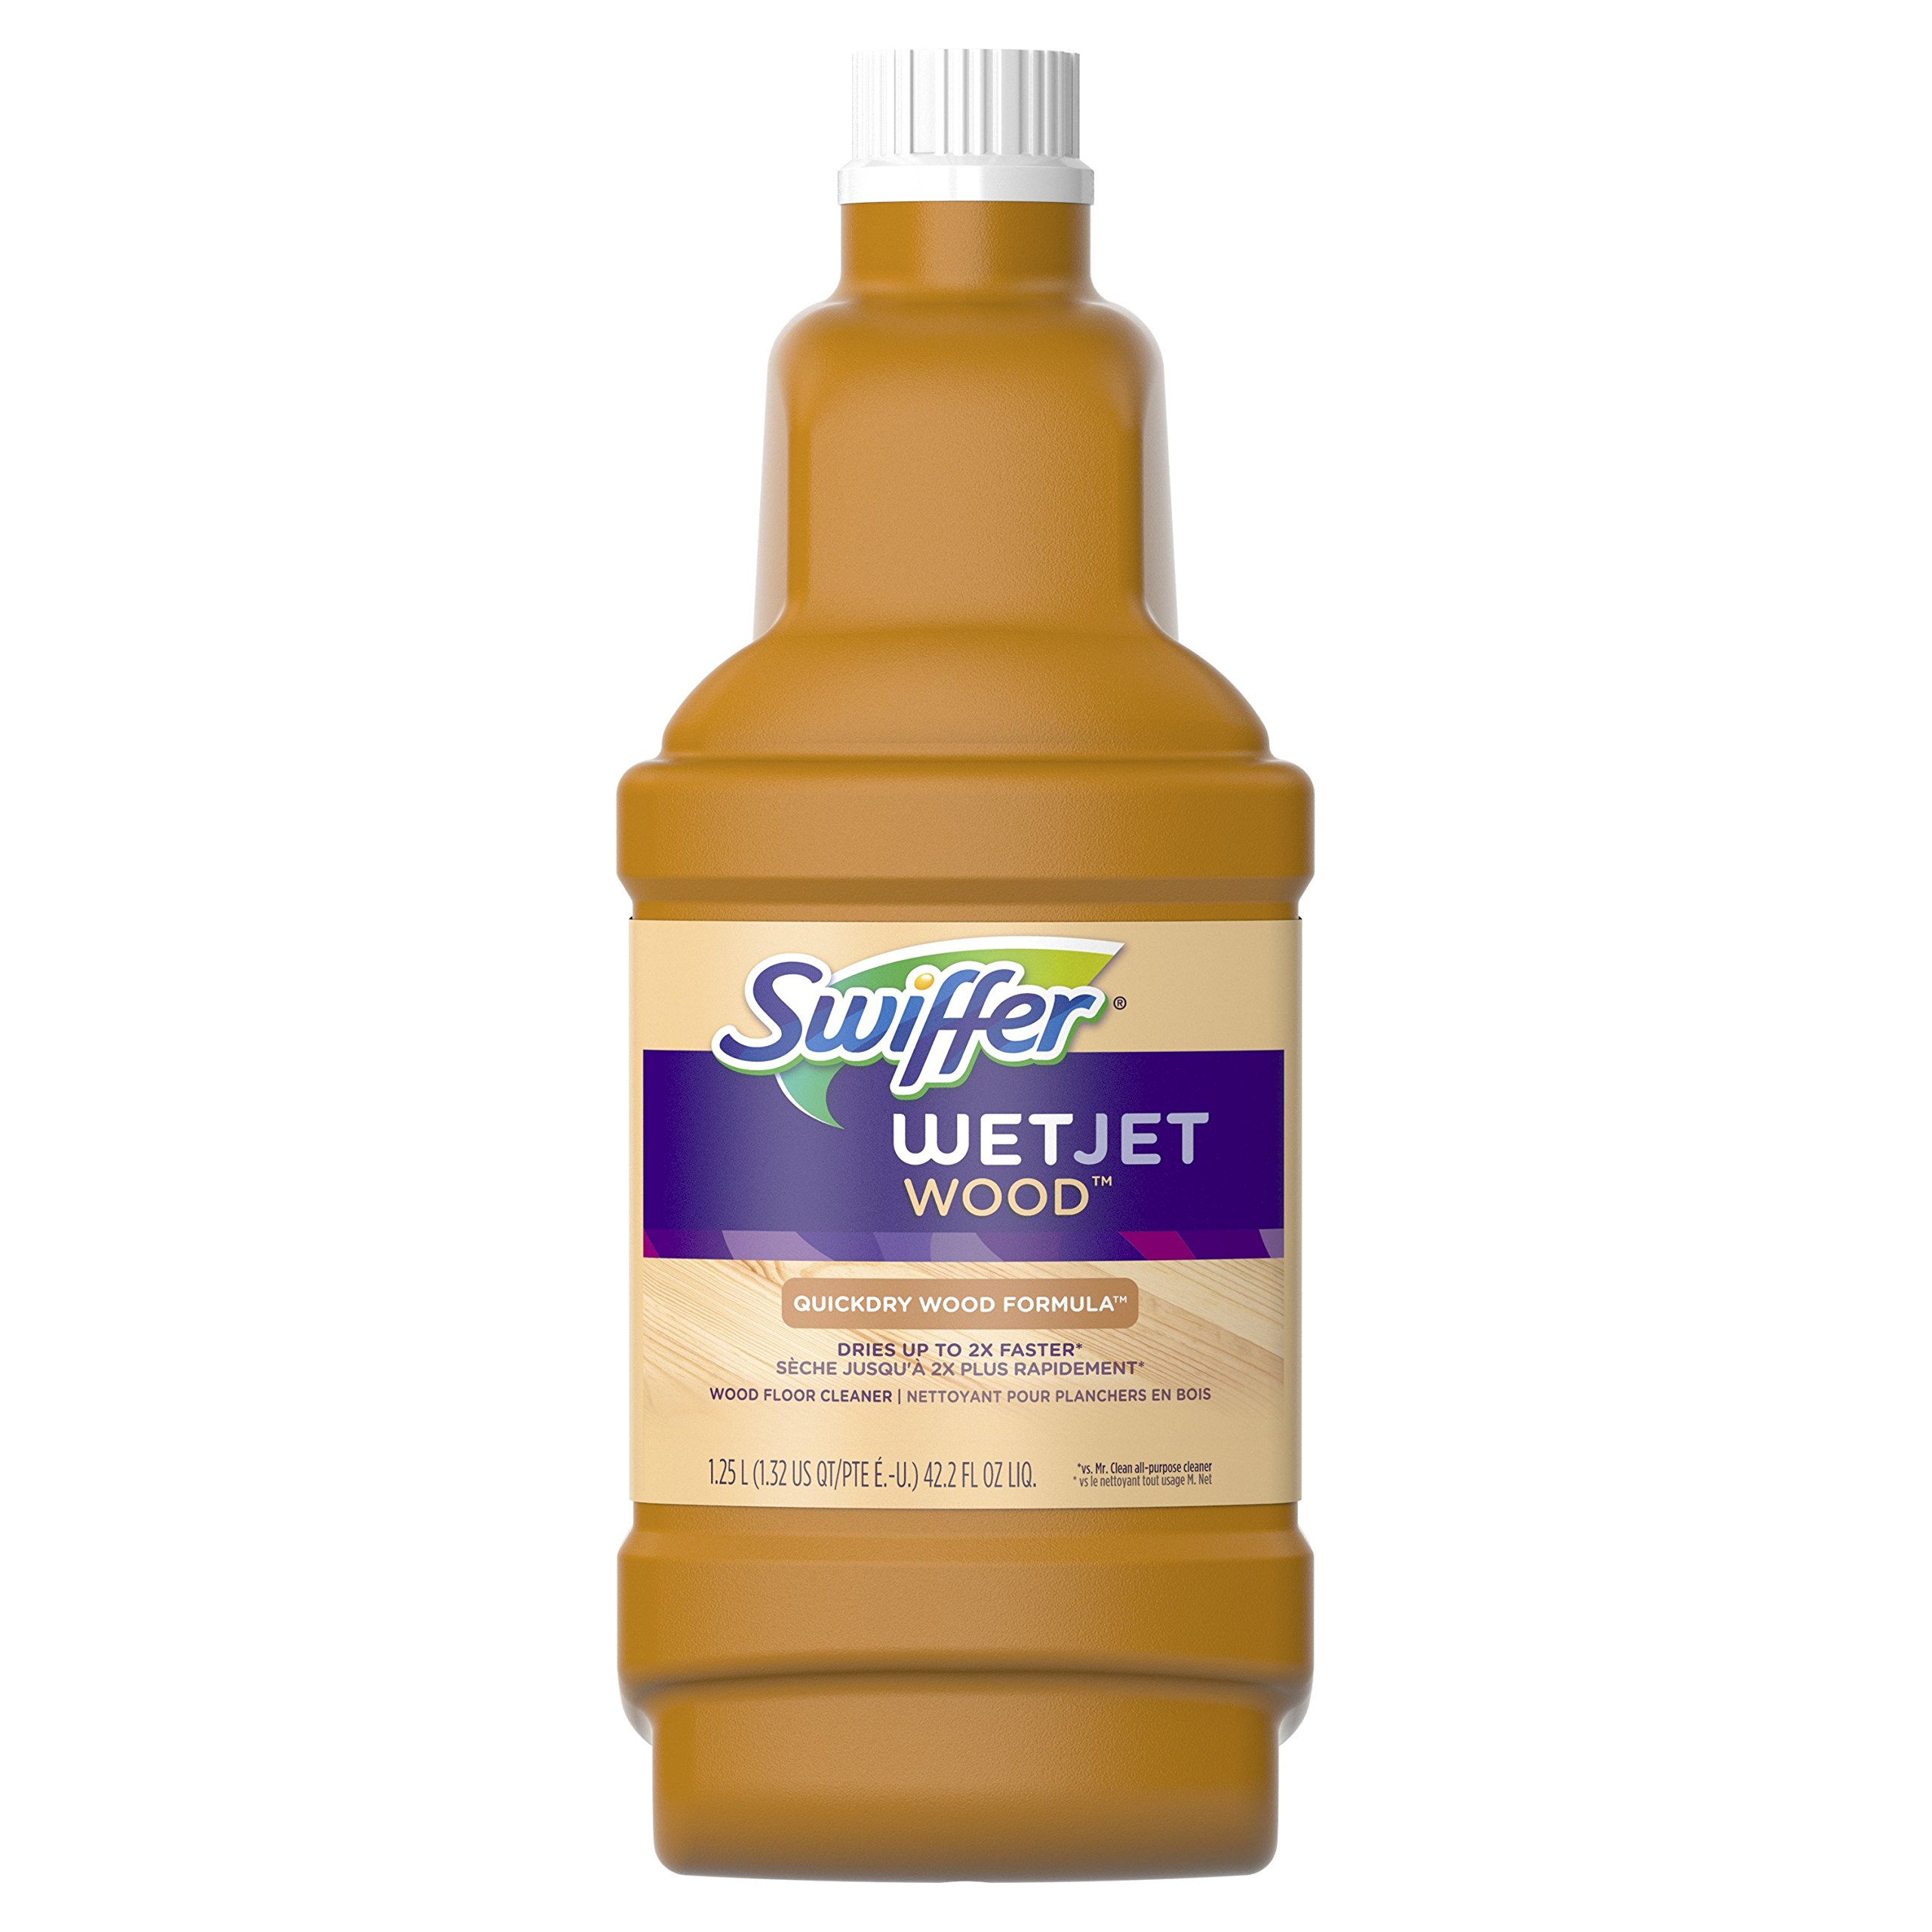 Swiffer WetJet Multi-purpose Hardwood Floor Cleaner Solution Refill, 1.25L (Packaging May Vary)